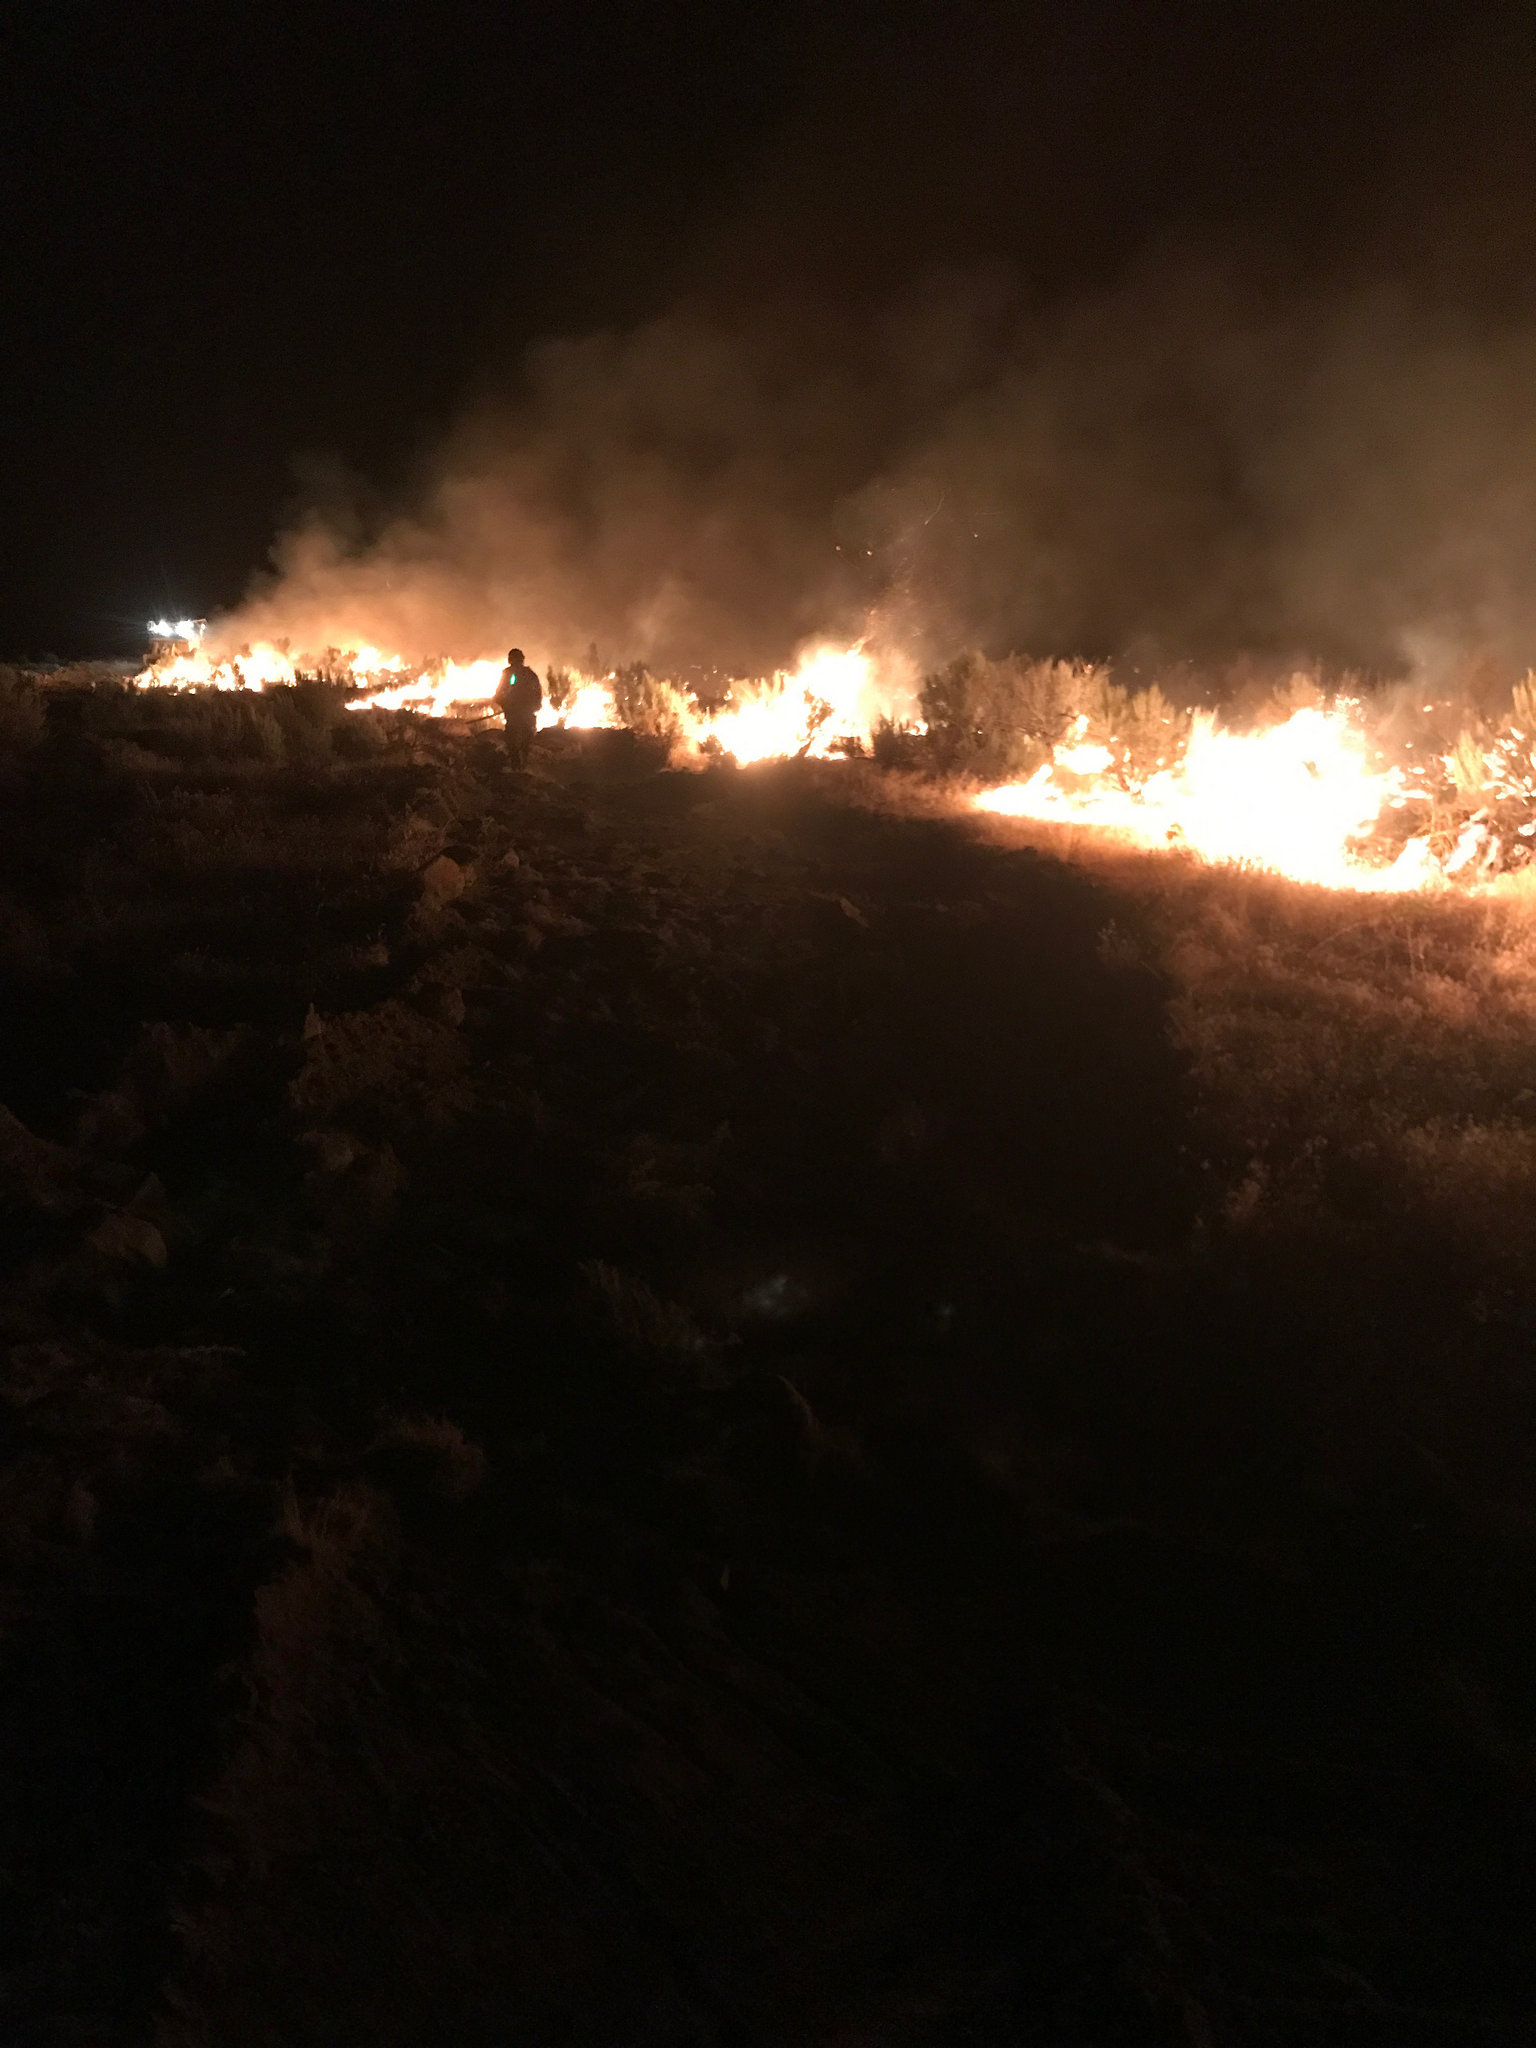 limerick-fire-that-started-july-3-2017-15-miles-northeast-of-lovelock-nevada_35744723886_o